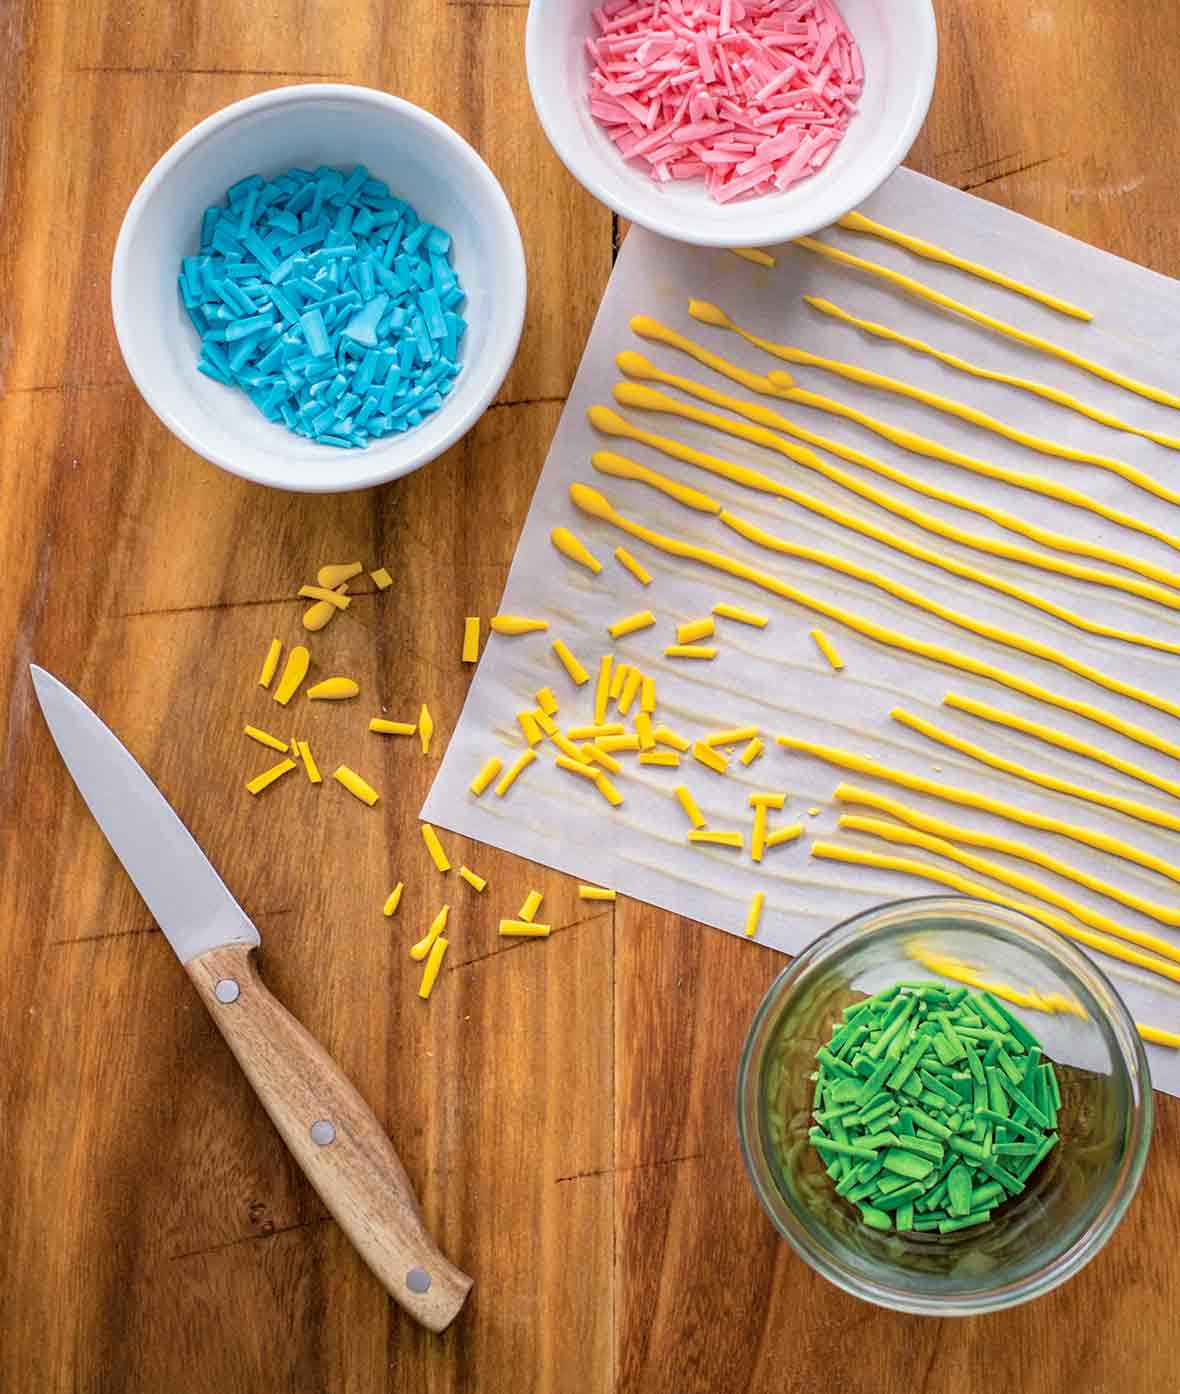 Parchment paper with long lines of yellow homemade sprinkles, plus bowls of green, blue, and pink sprinkles